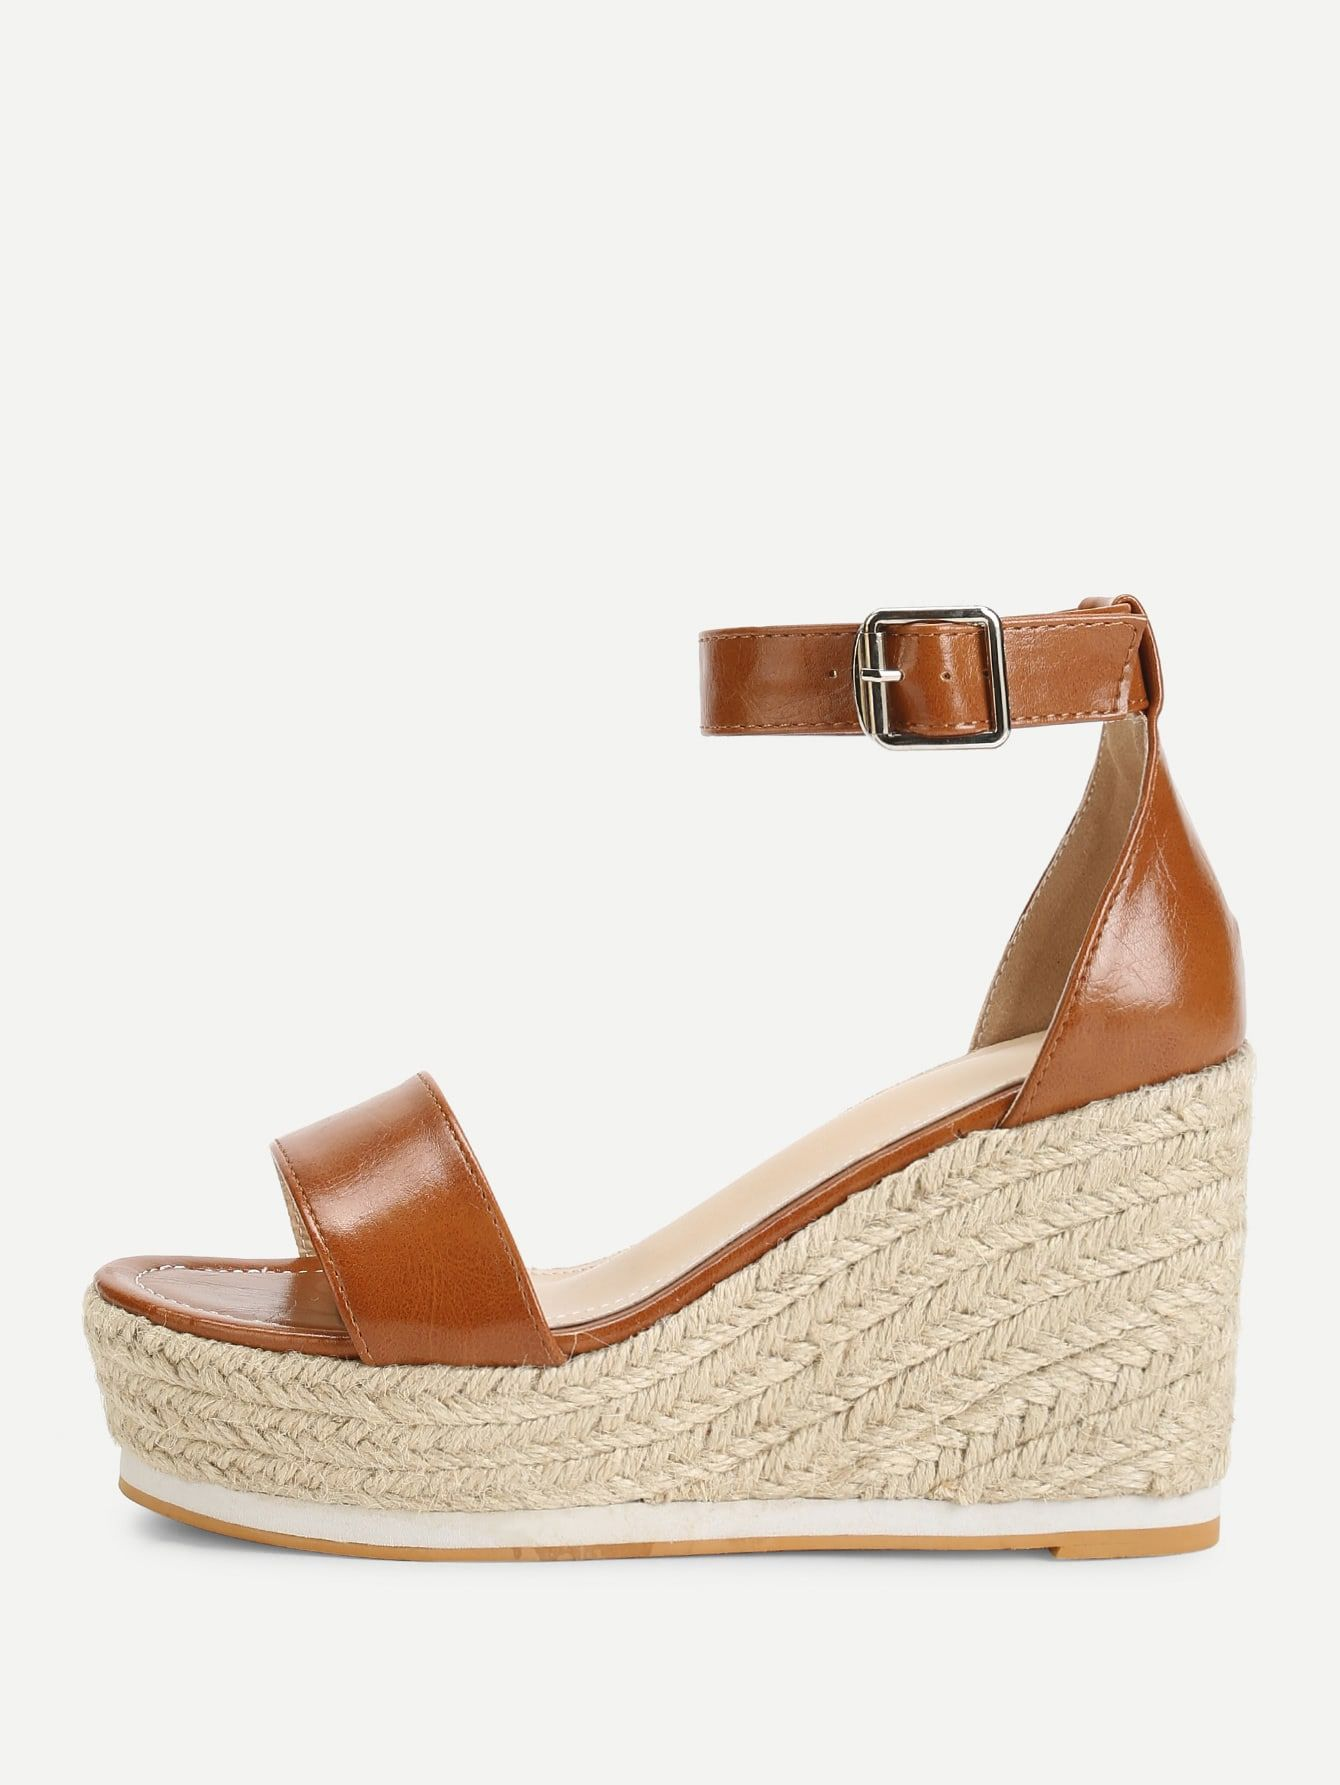 881a004d1d5e Vacation Open Toe Platform Ankle strap Brown High Heel Espadrille Ankle  Strap Espadrille Wedges